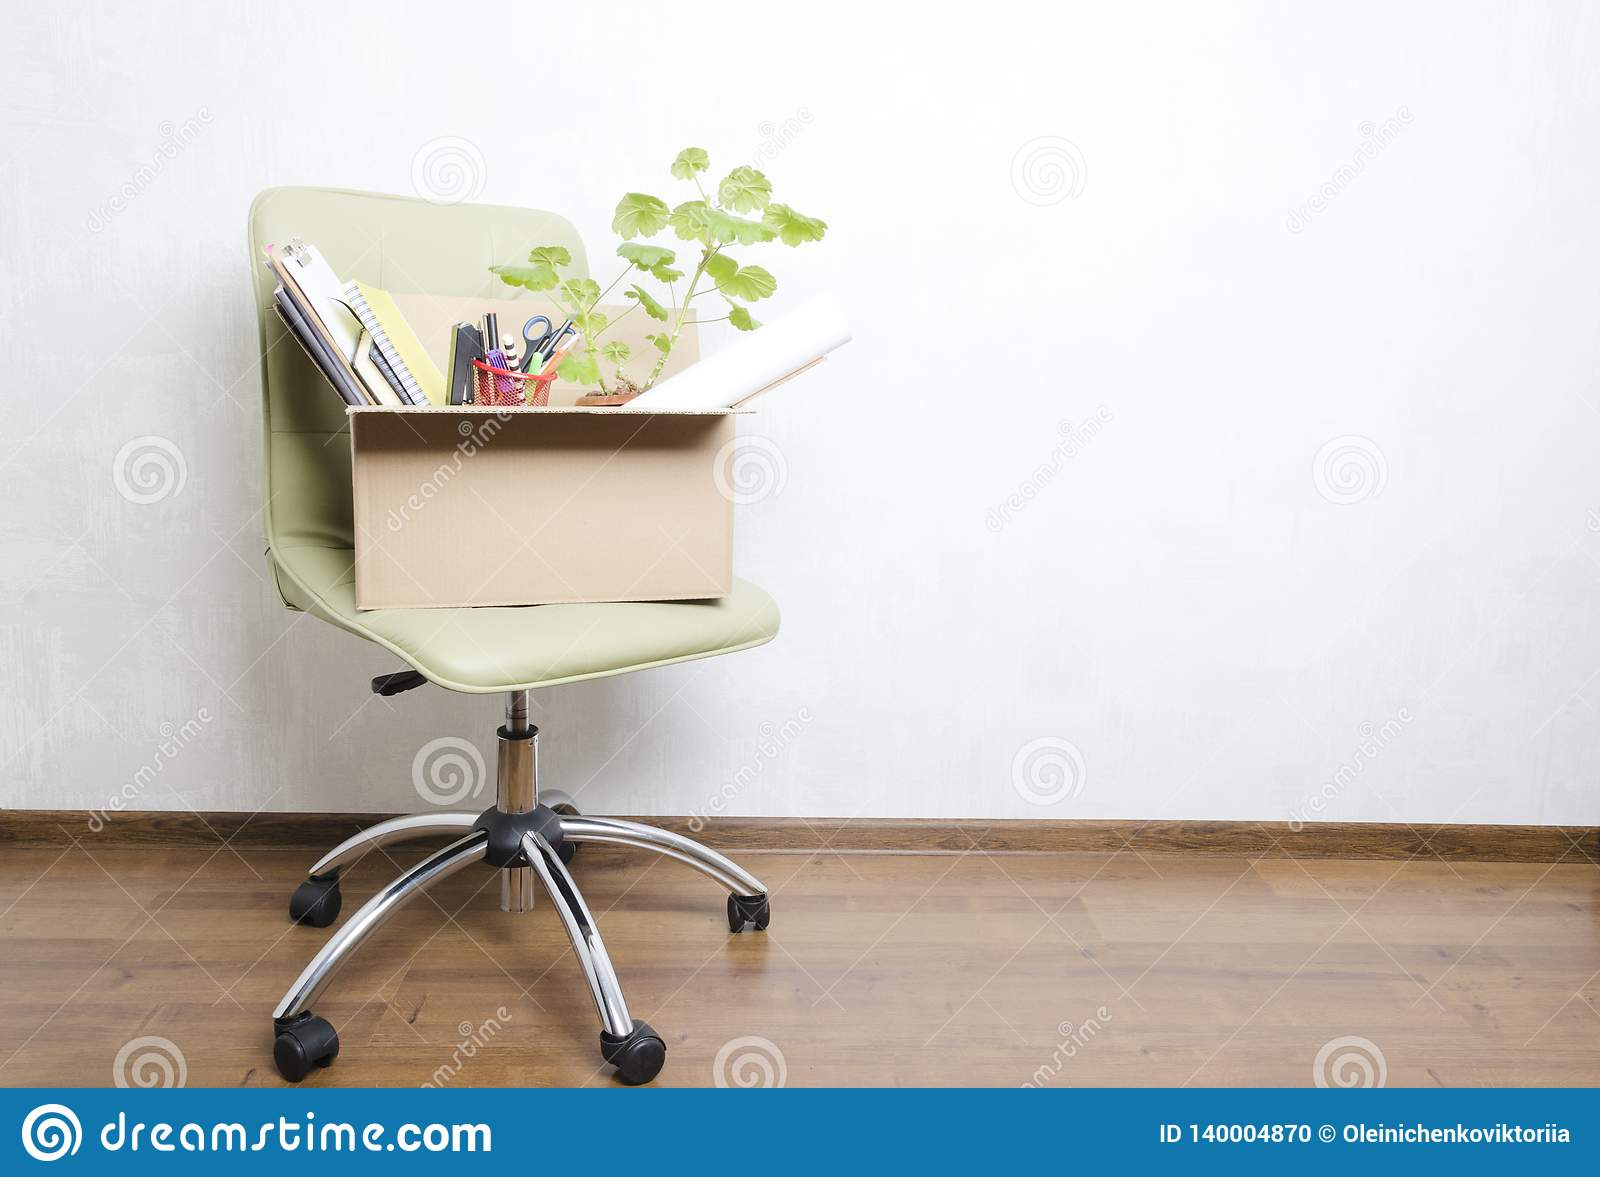 Groovy Box With Personal Items Standing On The Chair In The Office Alphanode Cool Chair Designs And Ideas Alphanodeonline